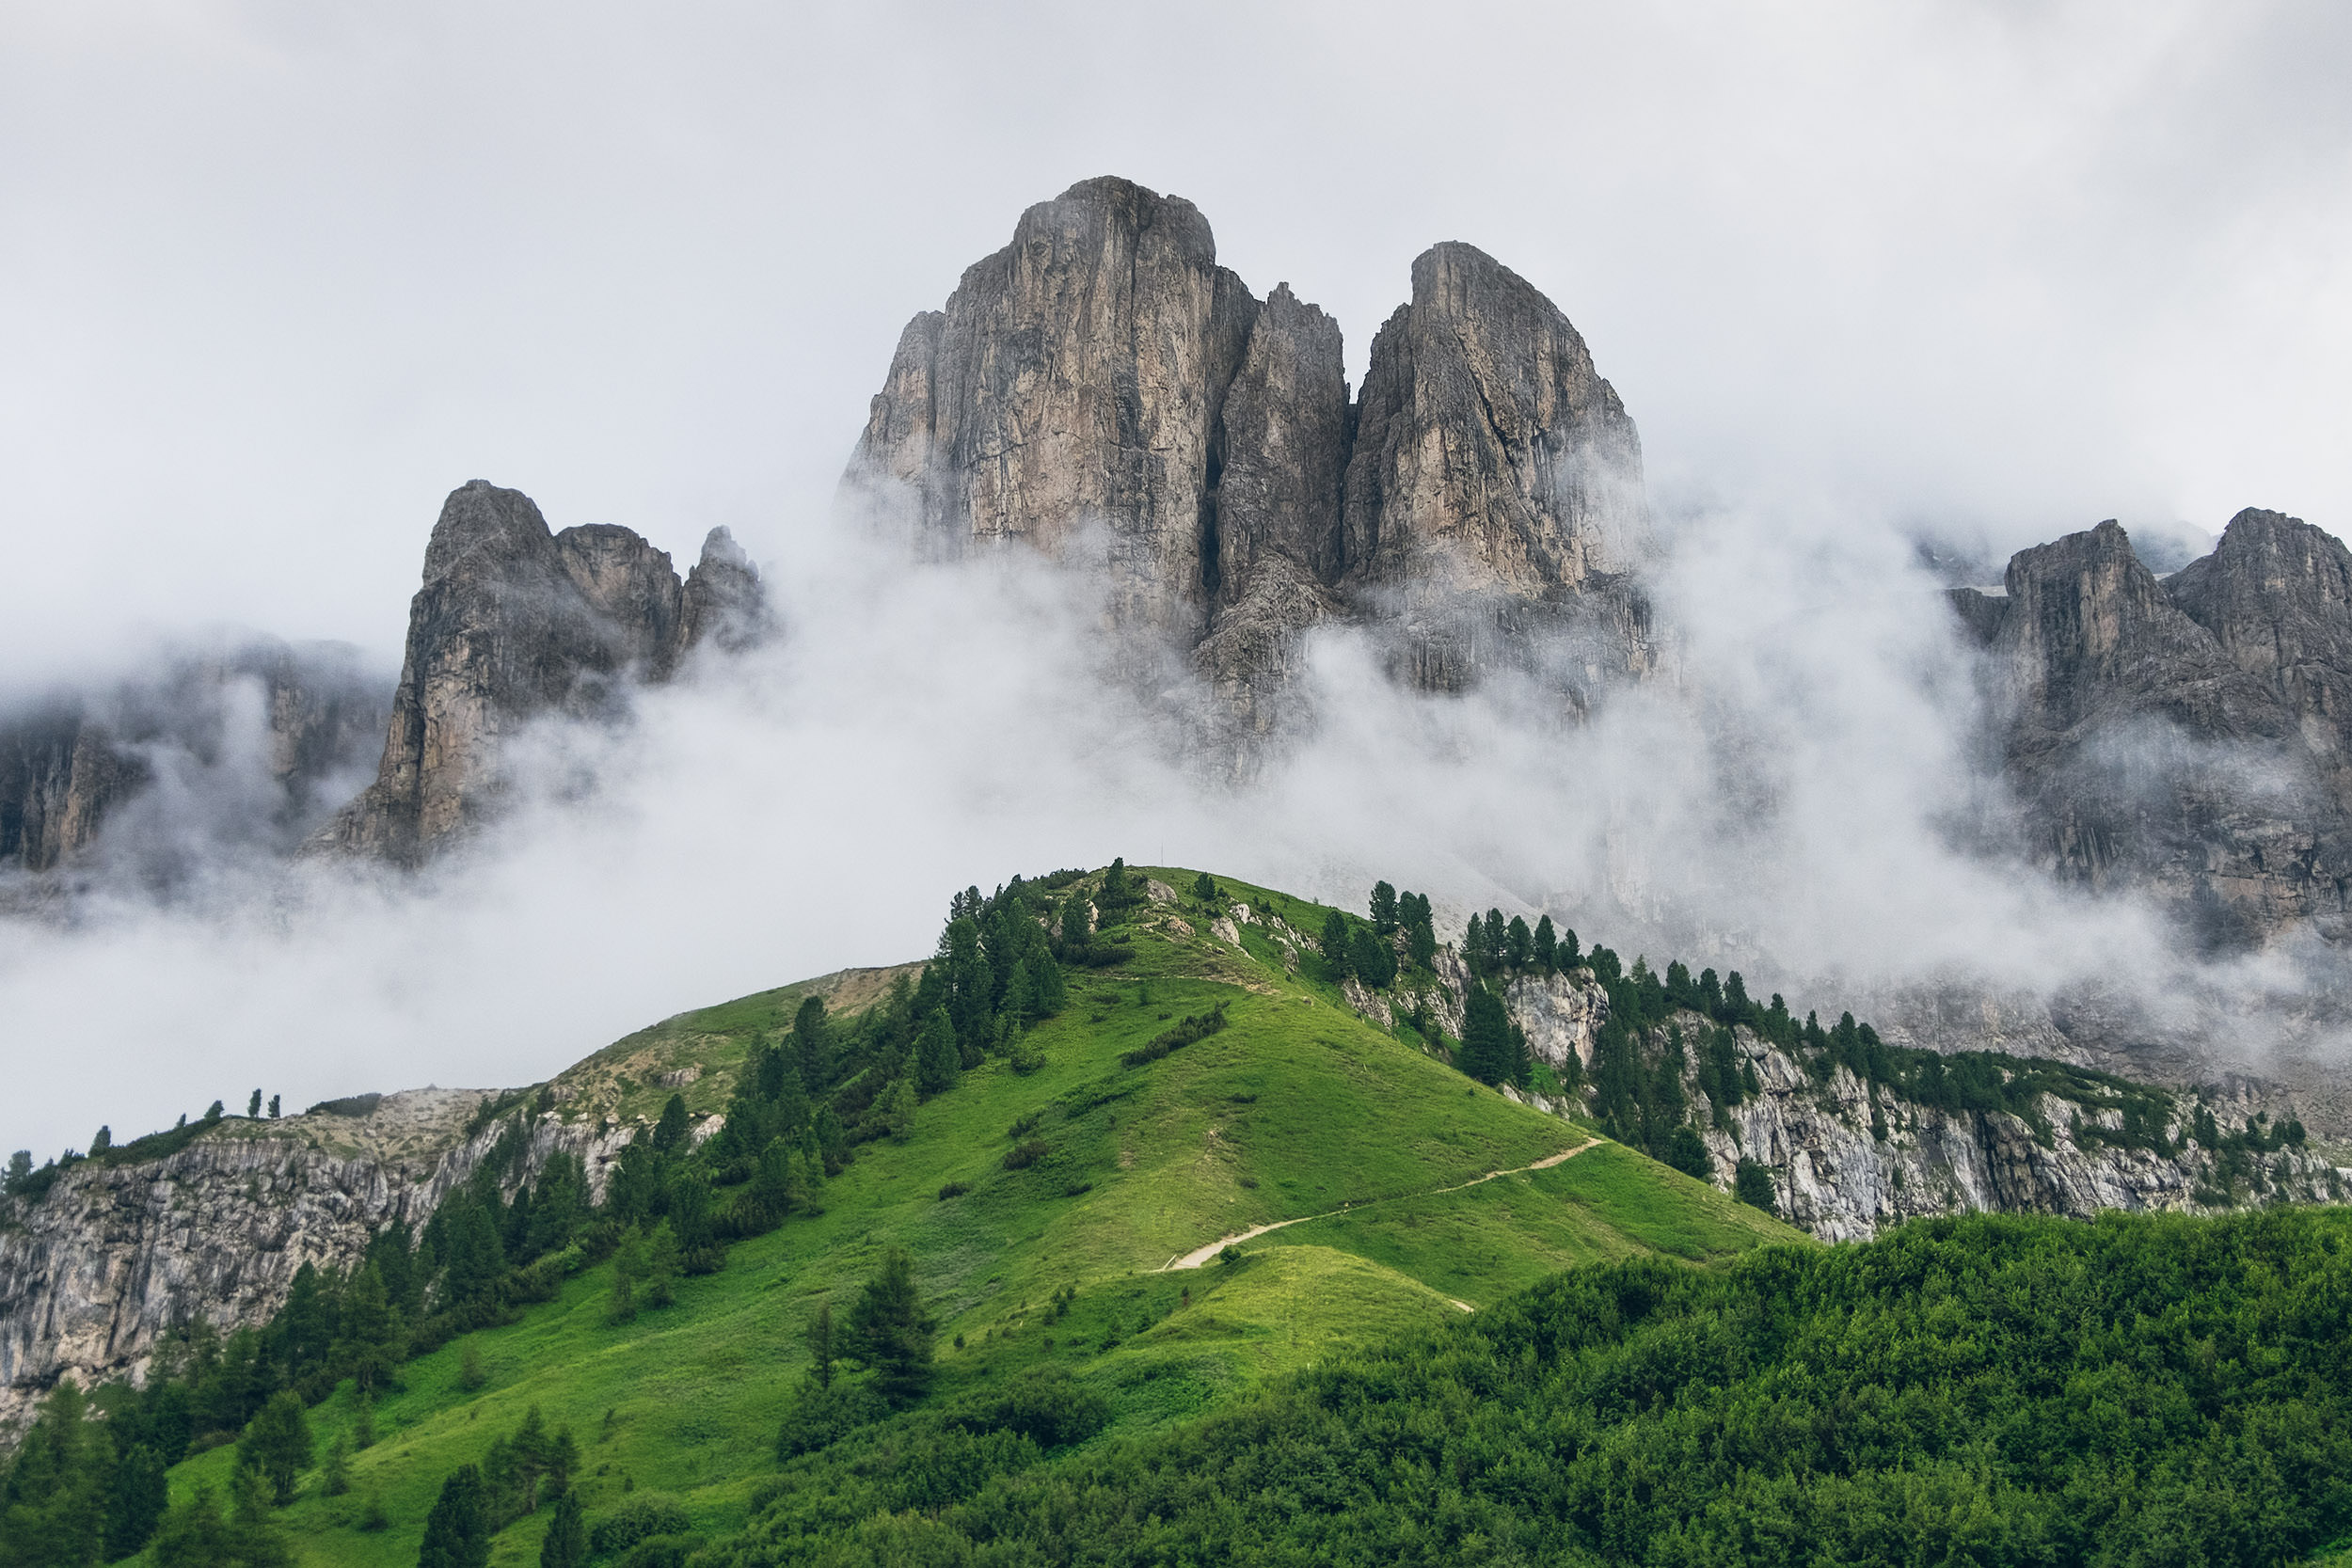 17-outdoor-adventure-mountains-italy-dolomites.jpg